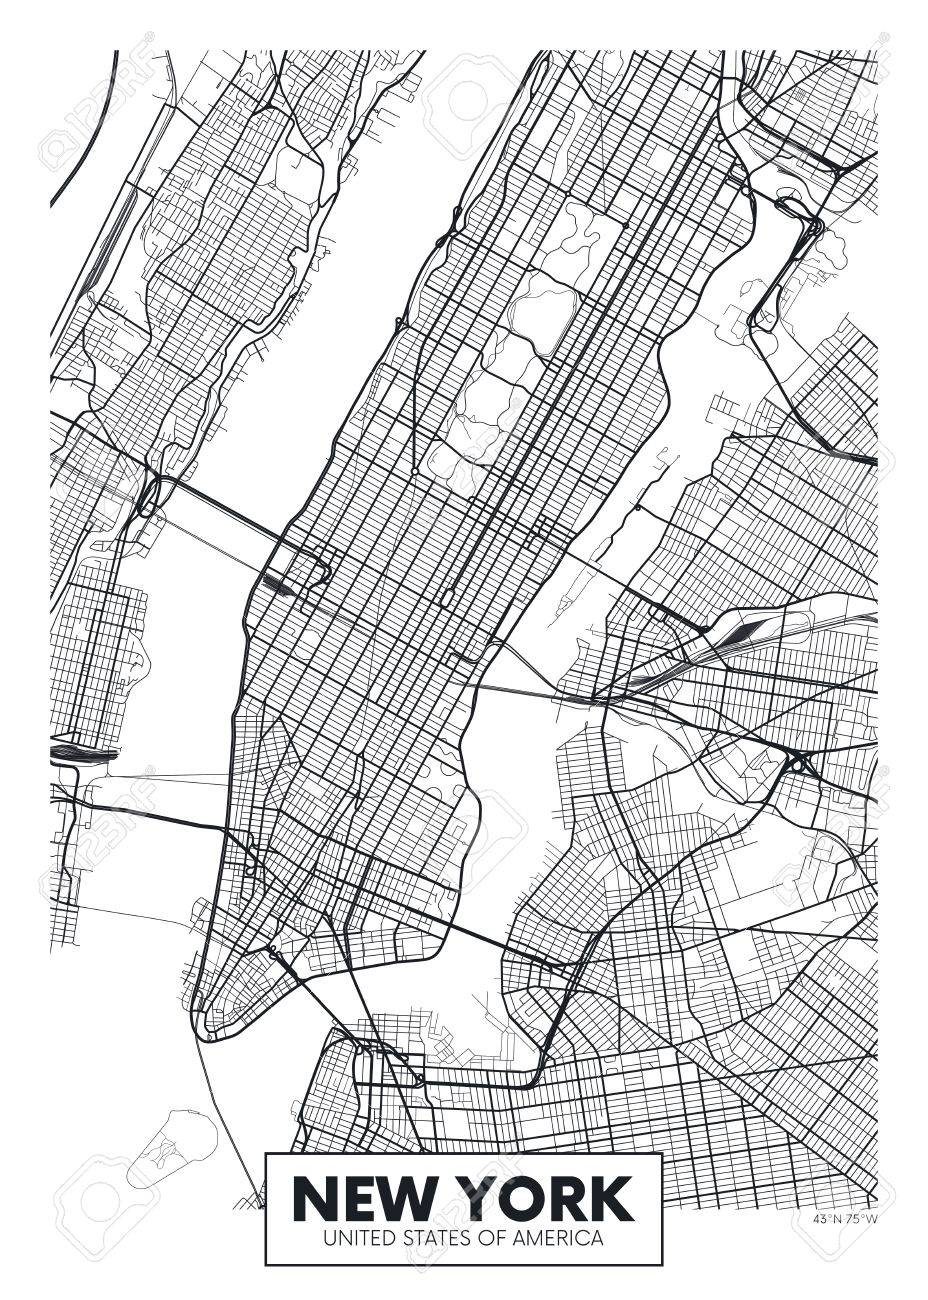 Map Of New York Poster.Vector Poster Map City New York